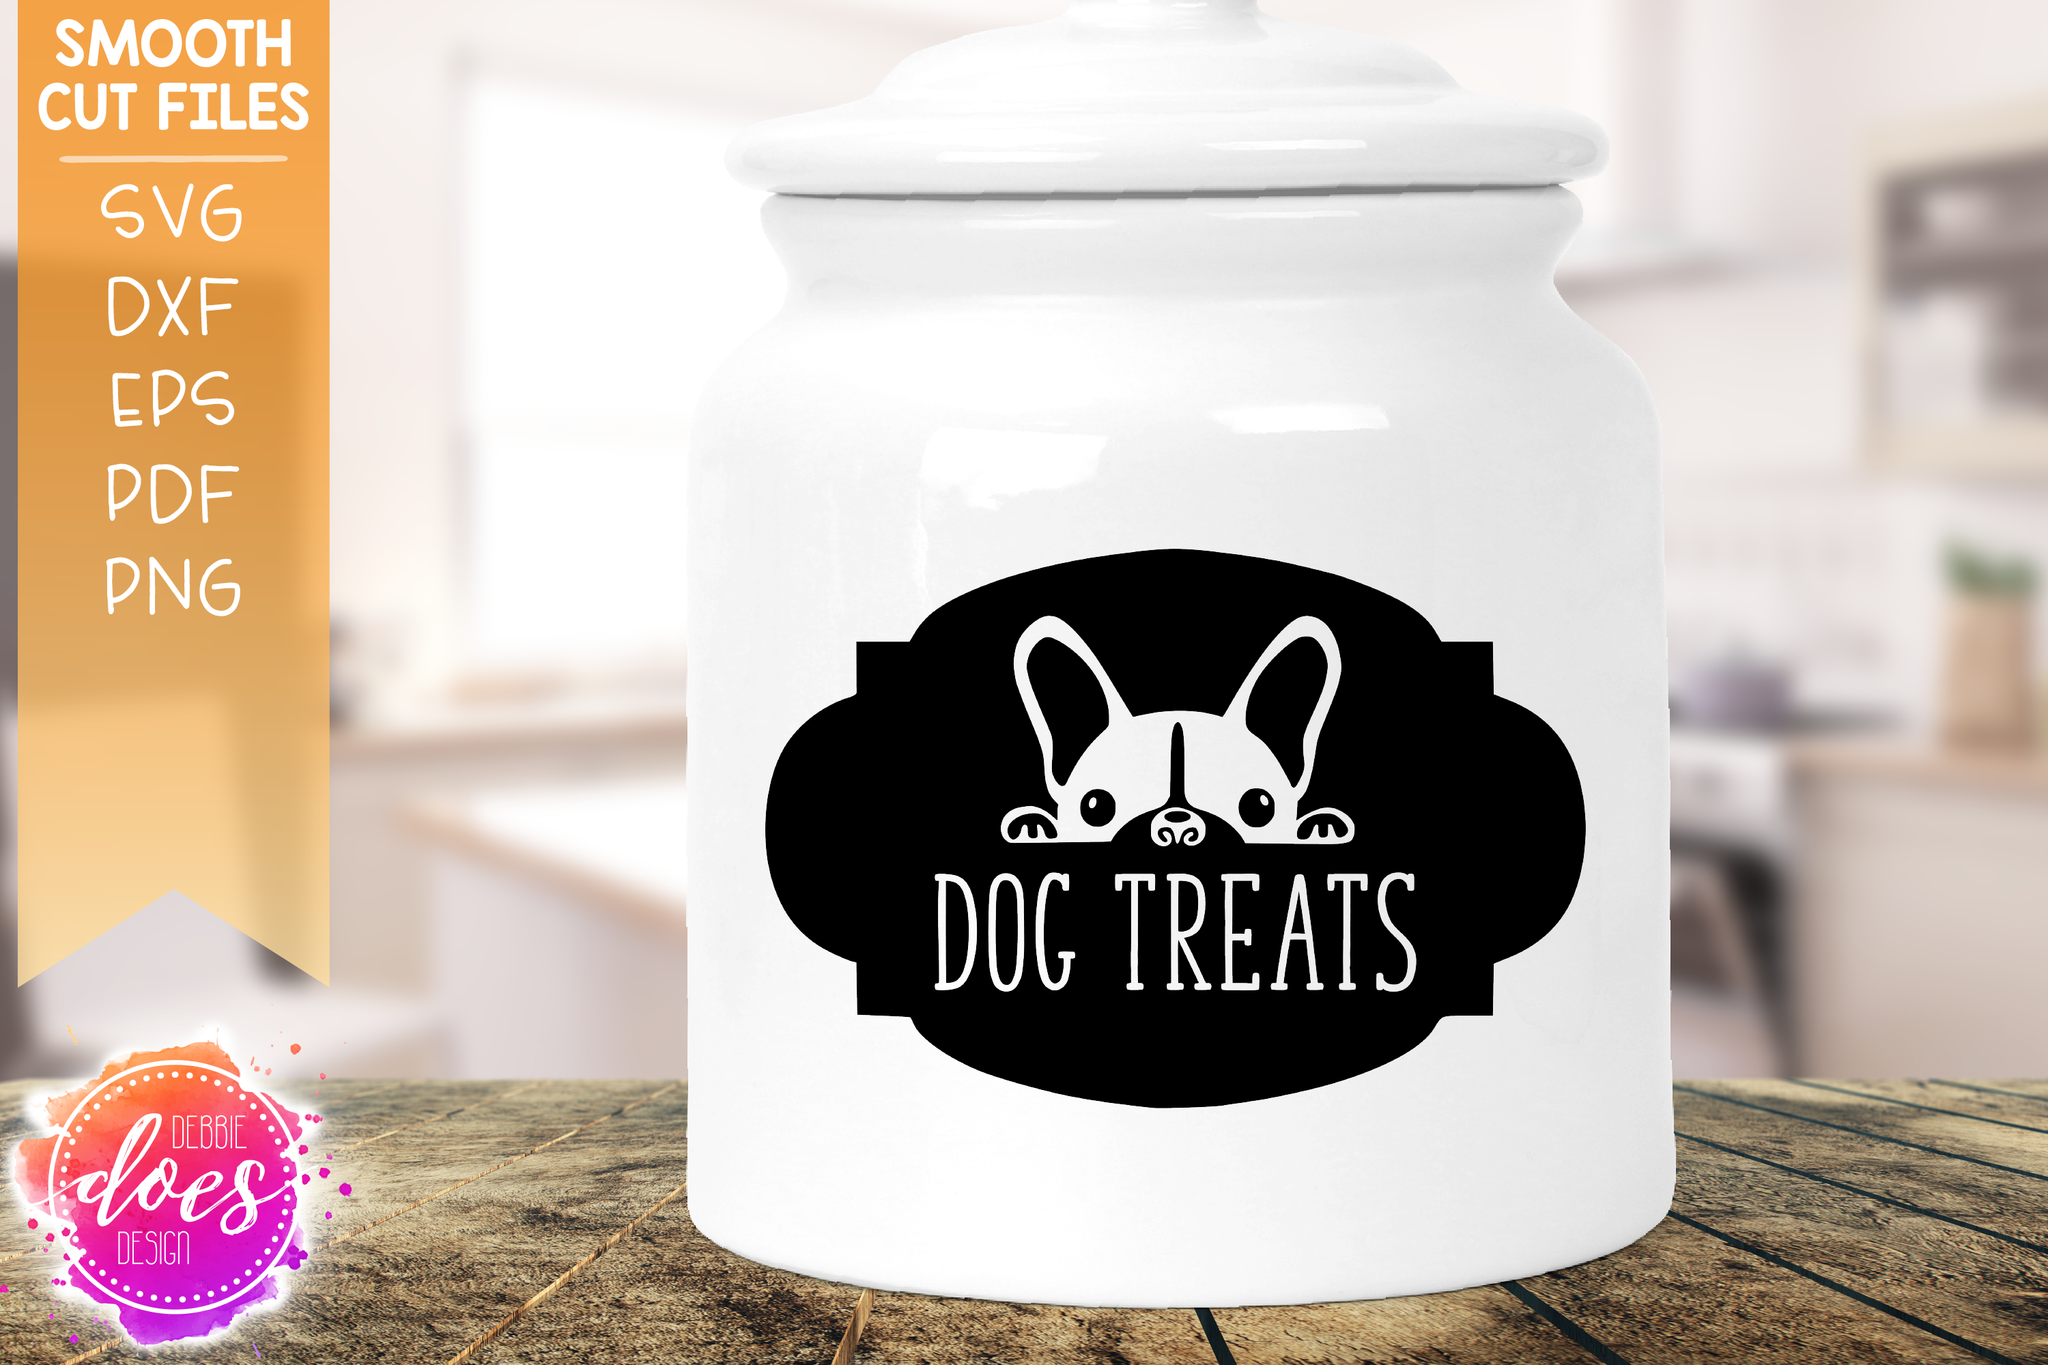 Dog Treats Framed - SVG File